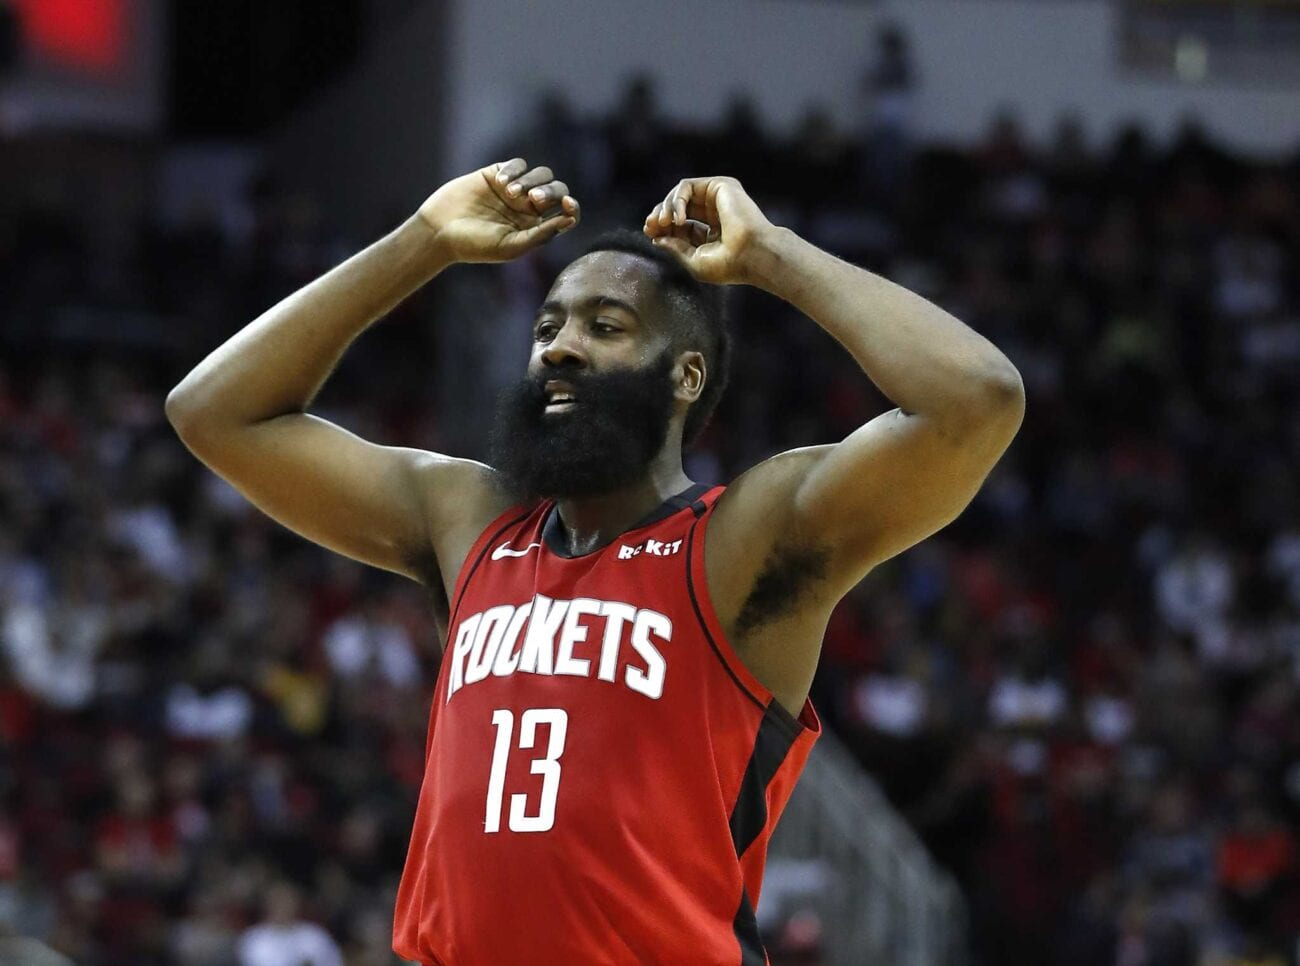 """The Beard"" James Harden has officially been traded to the Brooklyn Nets. Why it's now ""championship or bust"" for the former MVP and his All-Star teammates?"